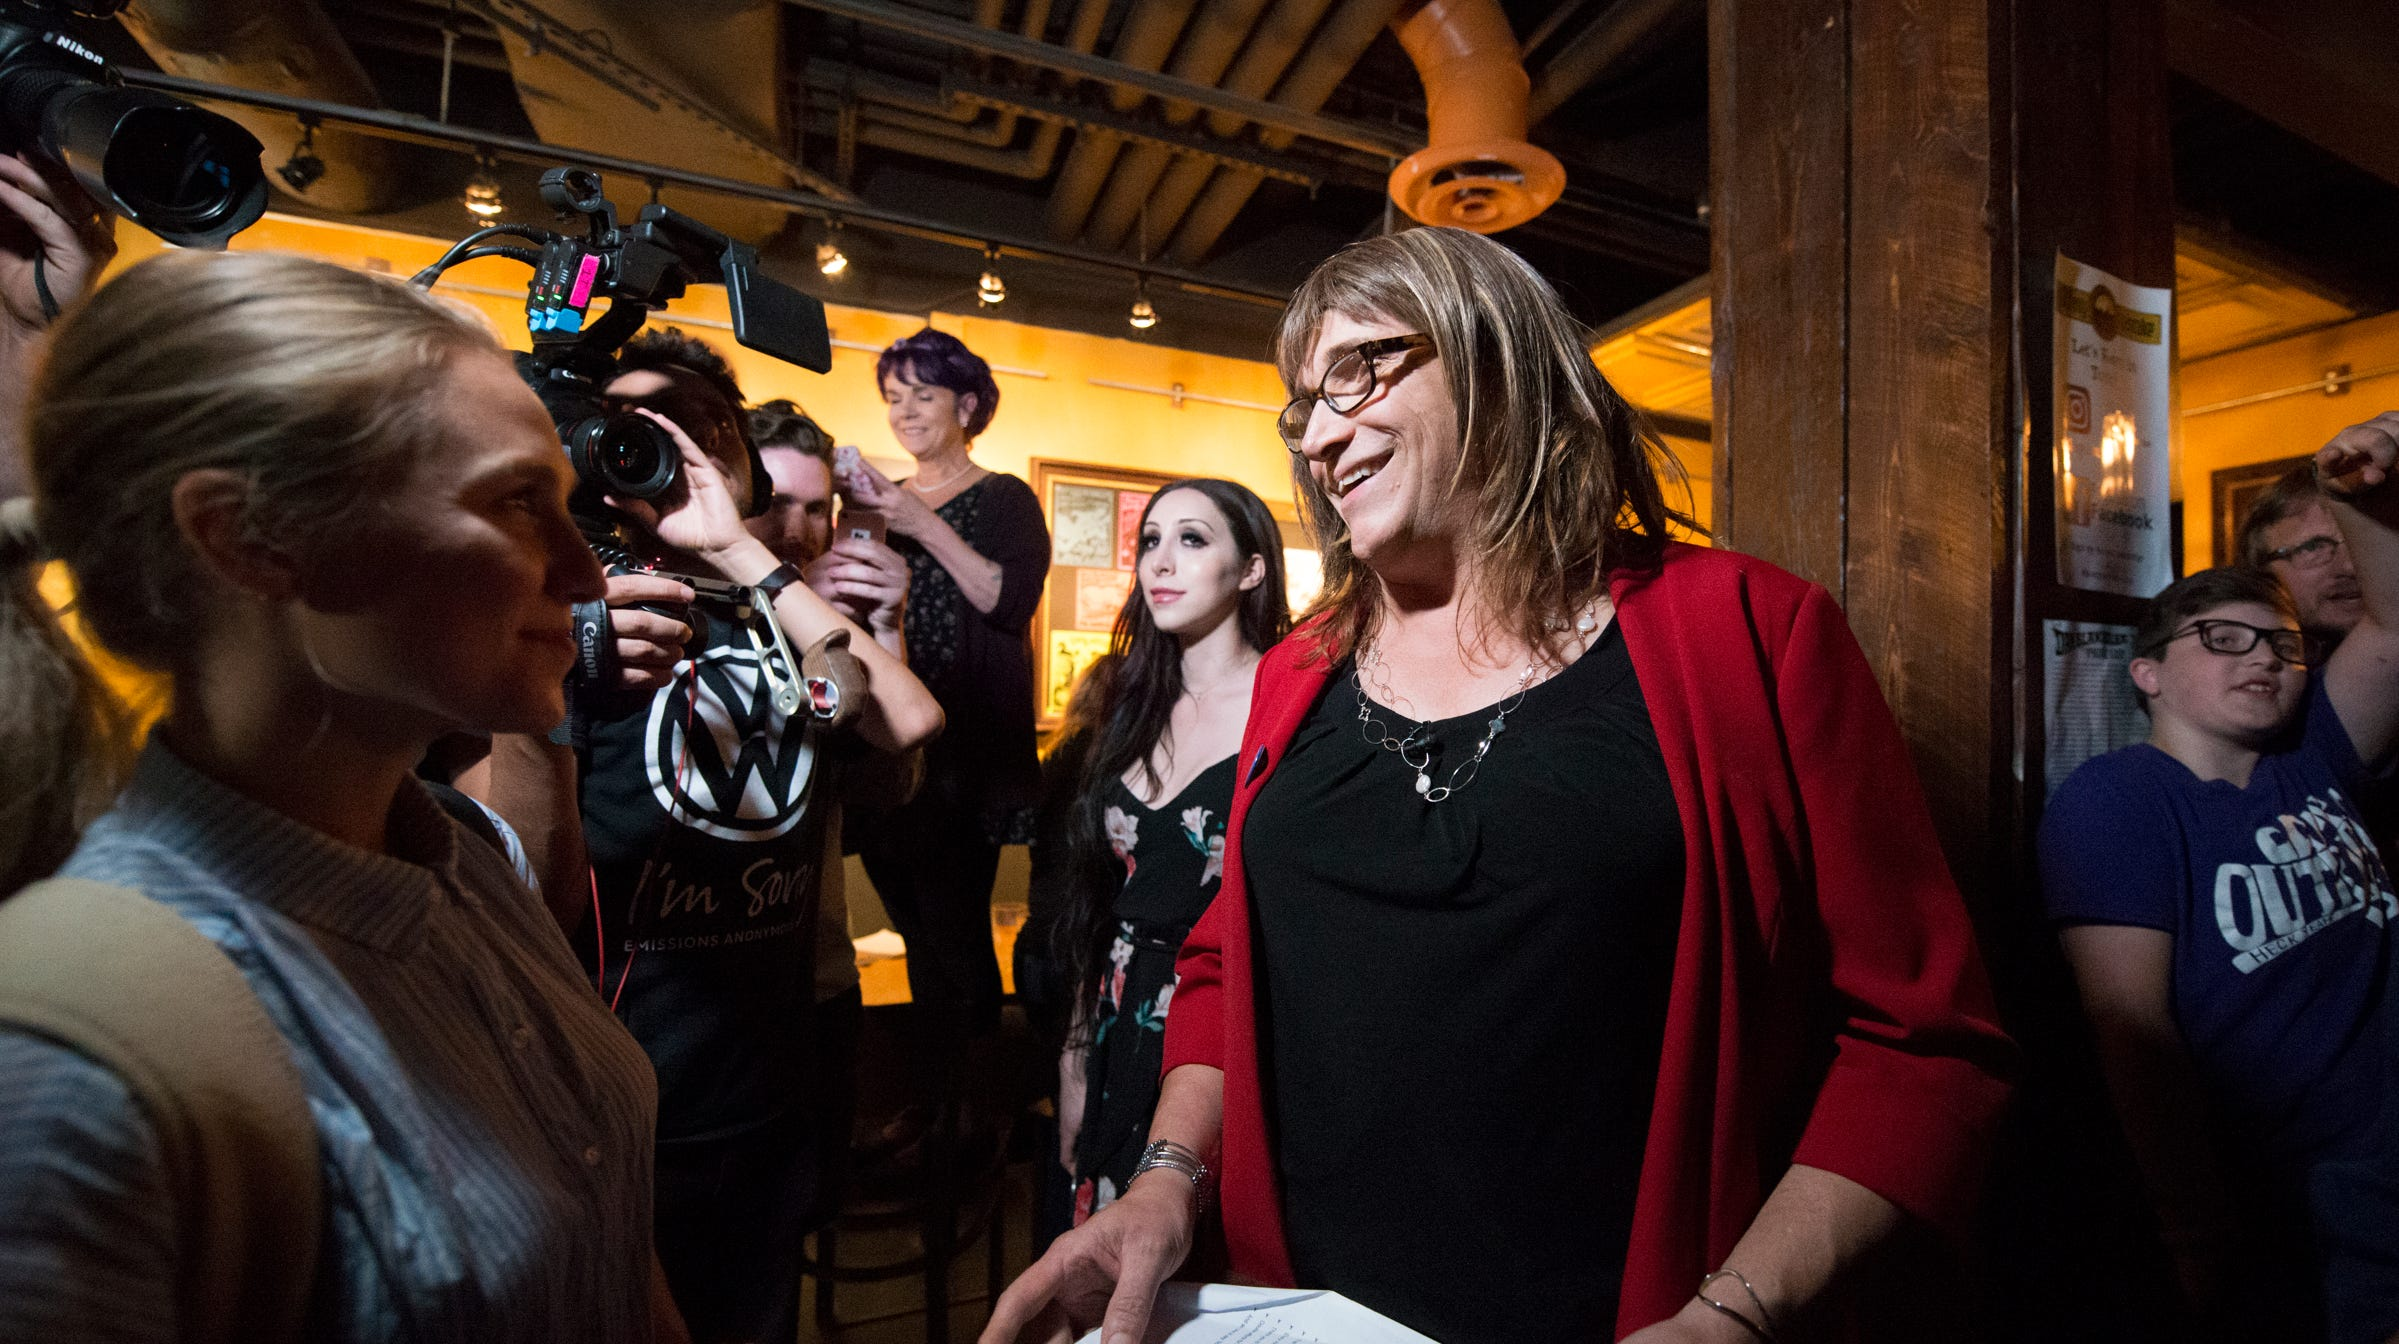 Christine Hallquist talks to reporters after winning the primary during her victory speech during the Primary party for democratic candidate for governor Christine Hallquist at the Skinny Pancake on Tuesday night August 14, 2018 in Burlington. (BRIAN JENKINS/for the FRESS PRESS)